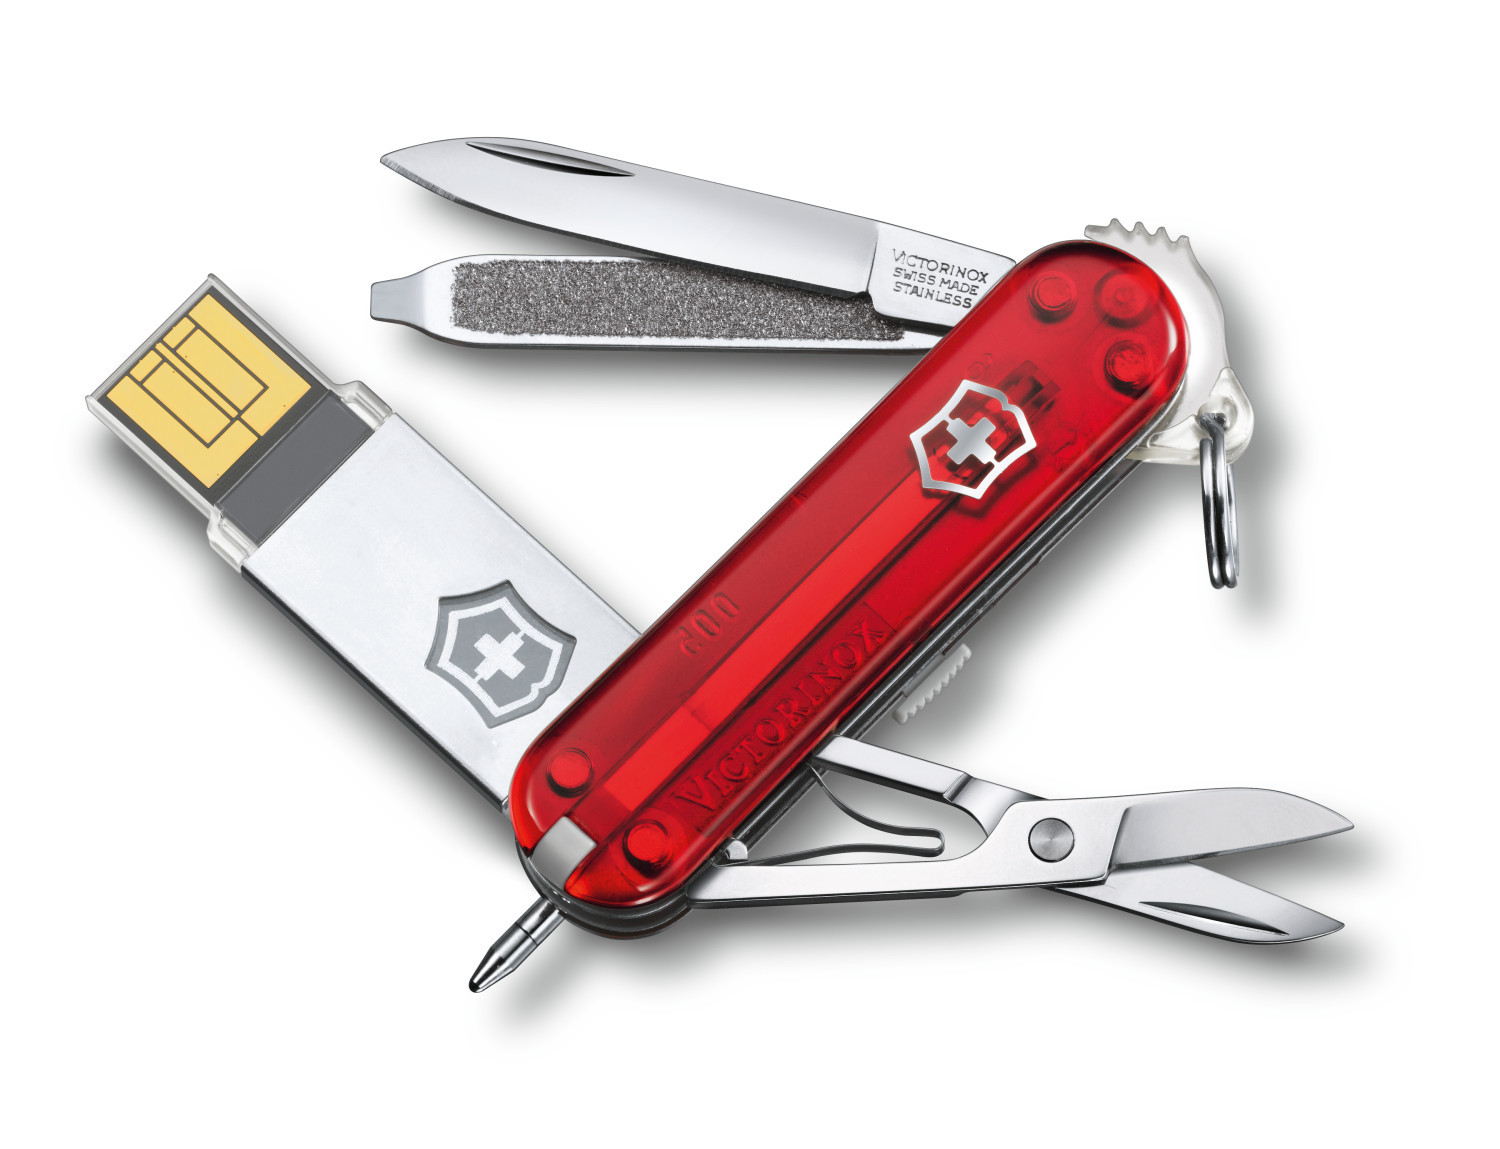 Victorinox@work USB 16GB (4.6125.TG16B)